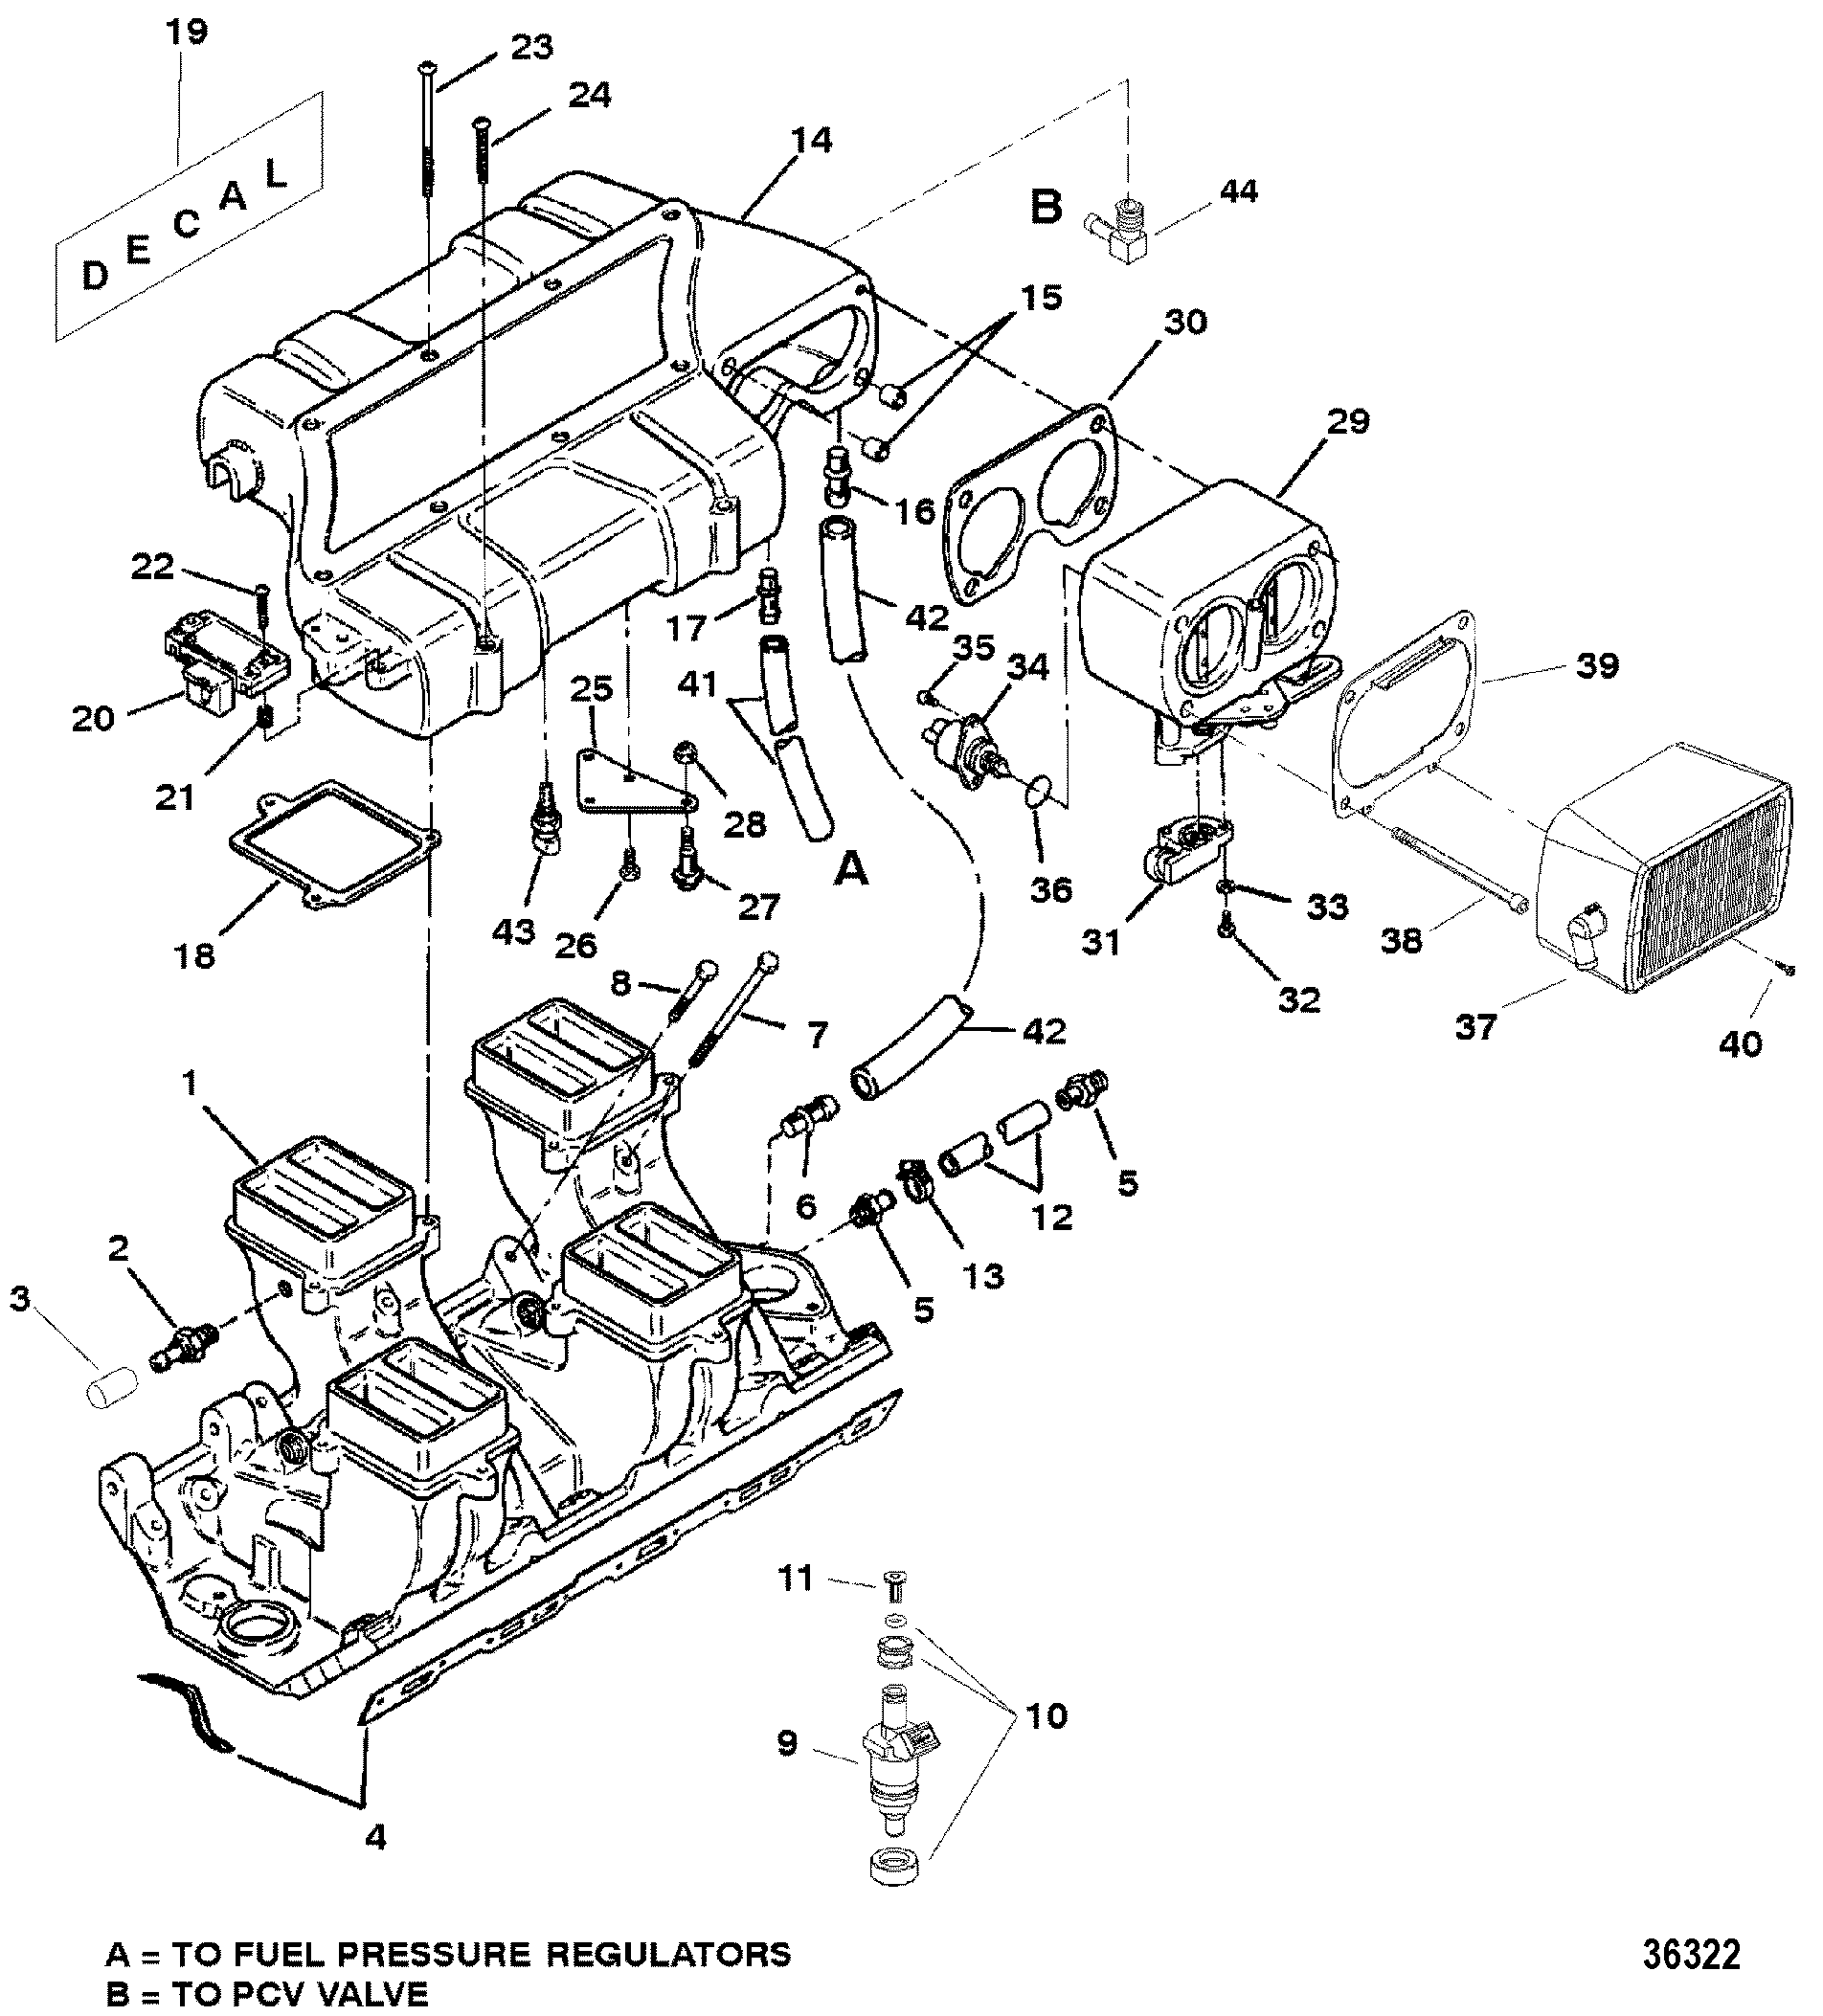 mercruiser 502 mpi wiring diagram   33 wiring diagram